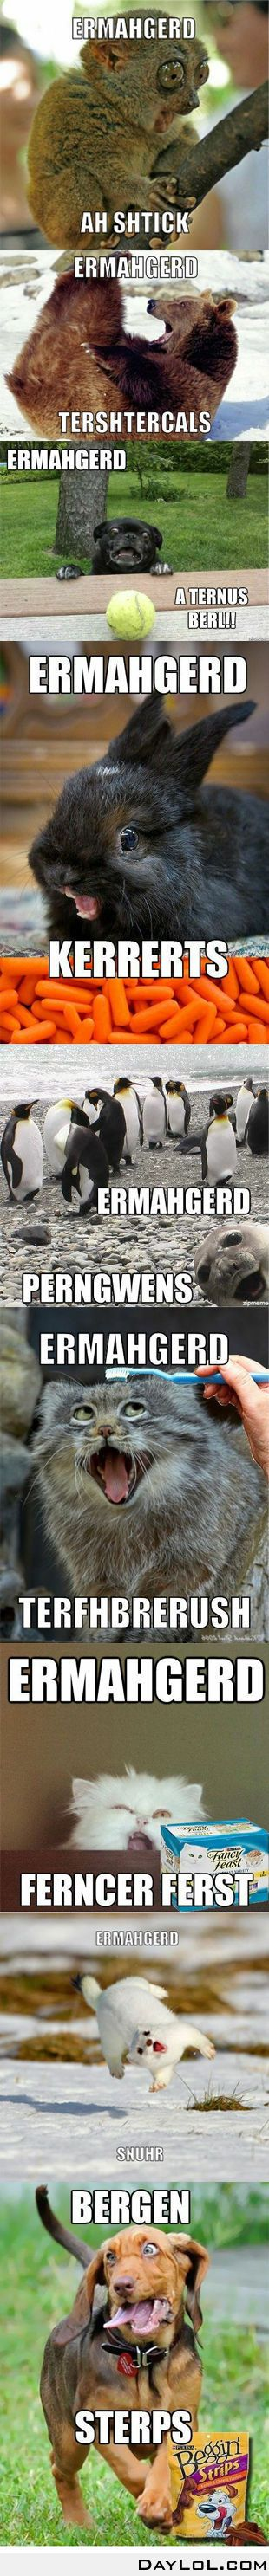 ERMAHGERD!!! {The one with the bear really made me lose it.} Hahaha @Sarah Kay @Aubrey Laughlin